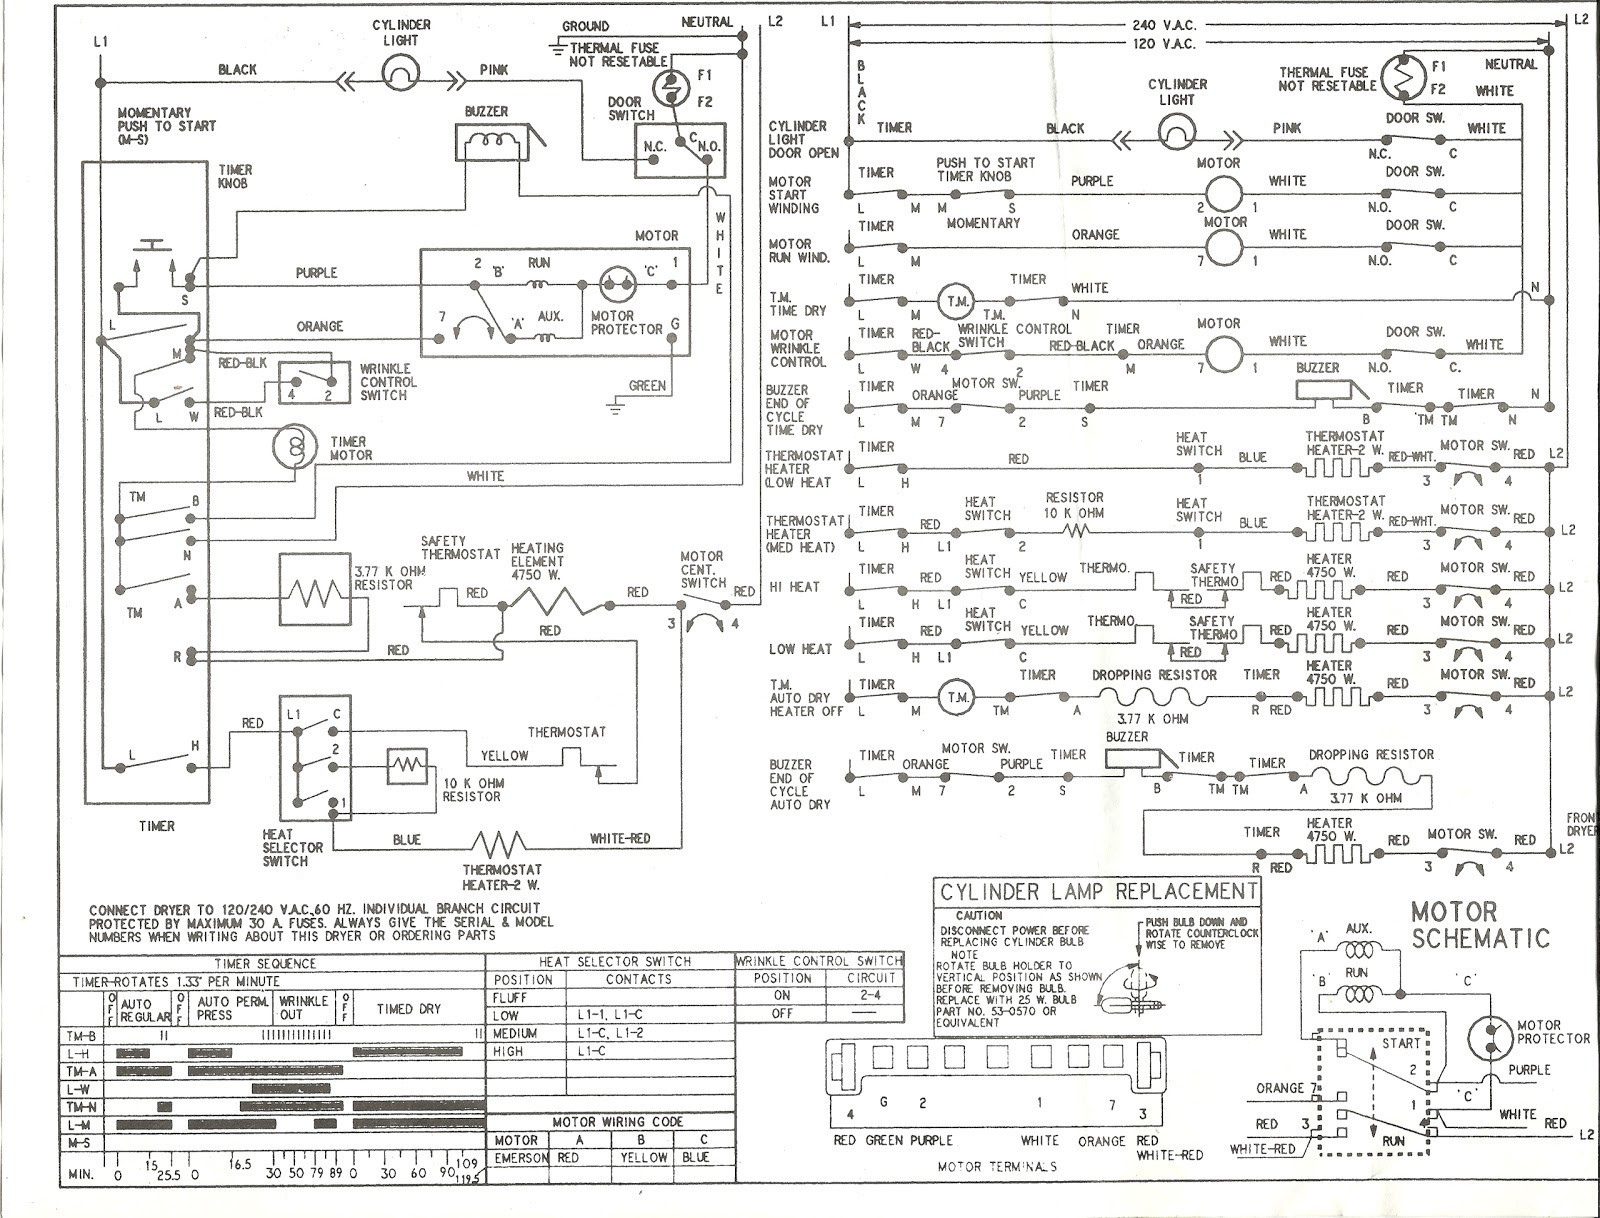 Kenmore Dryer Wiring Diagram 220 - Wiring Diagrams - Kenmore Dryer Wiring Diagram